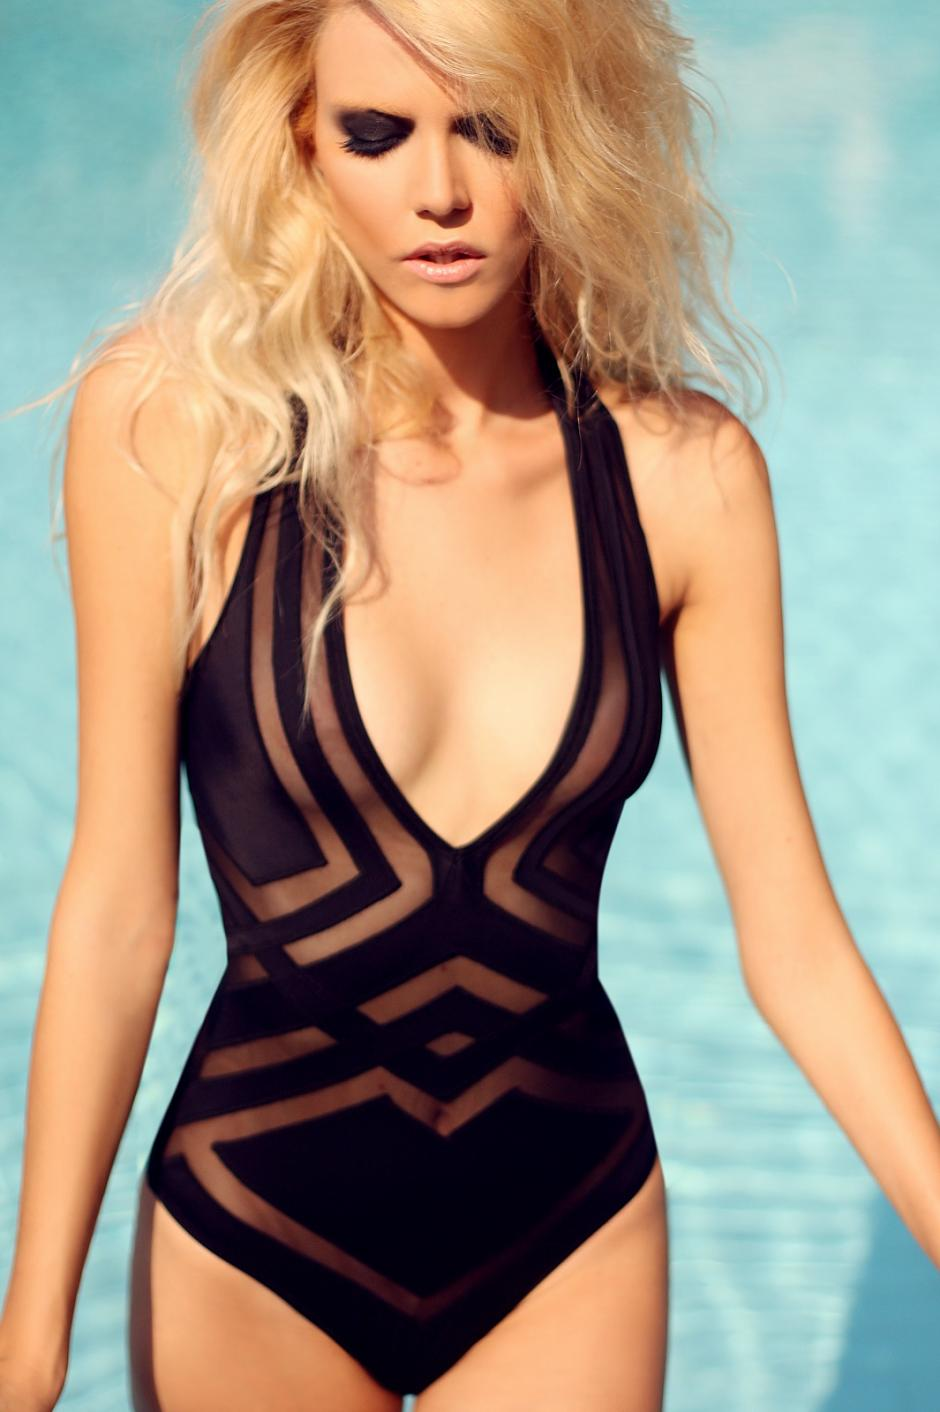 Certain women's one-piece swimsuits even feature adjustable straps, which let you lock in a cozy, customized fit. Interested in changing things up with a two-piece bathing suit? Browse women's swim tops and swim bottoms on kumau.ml